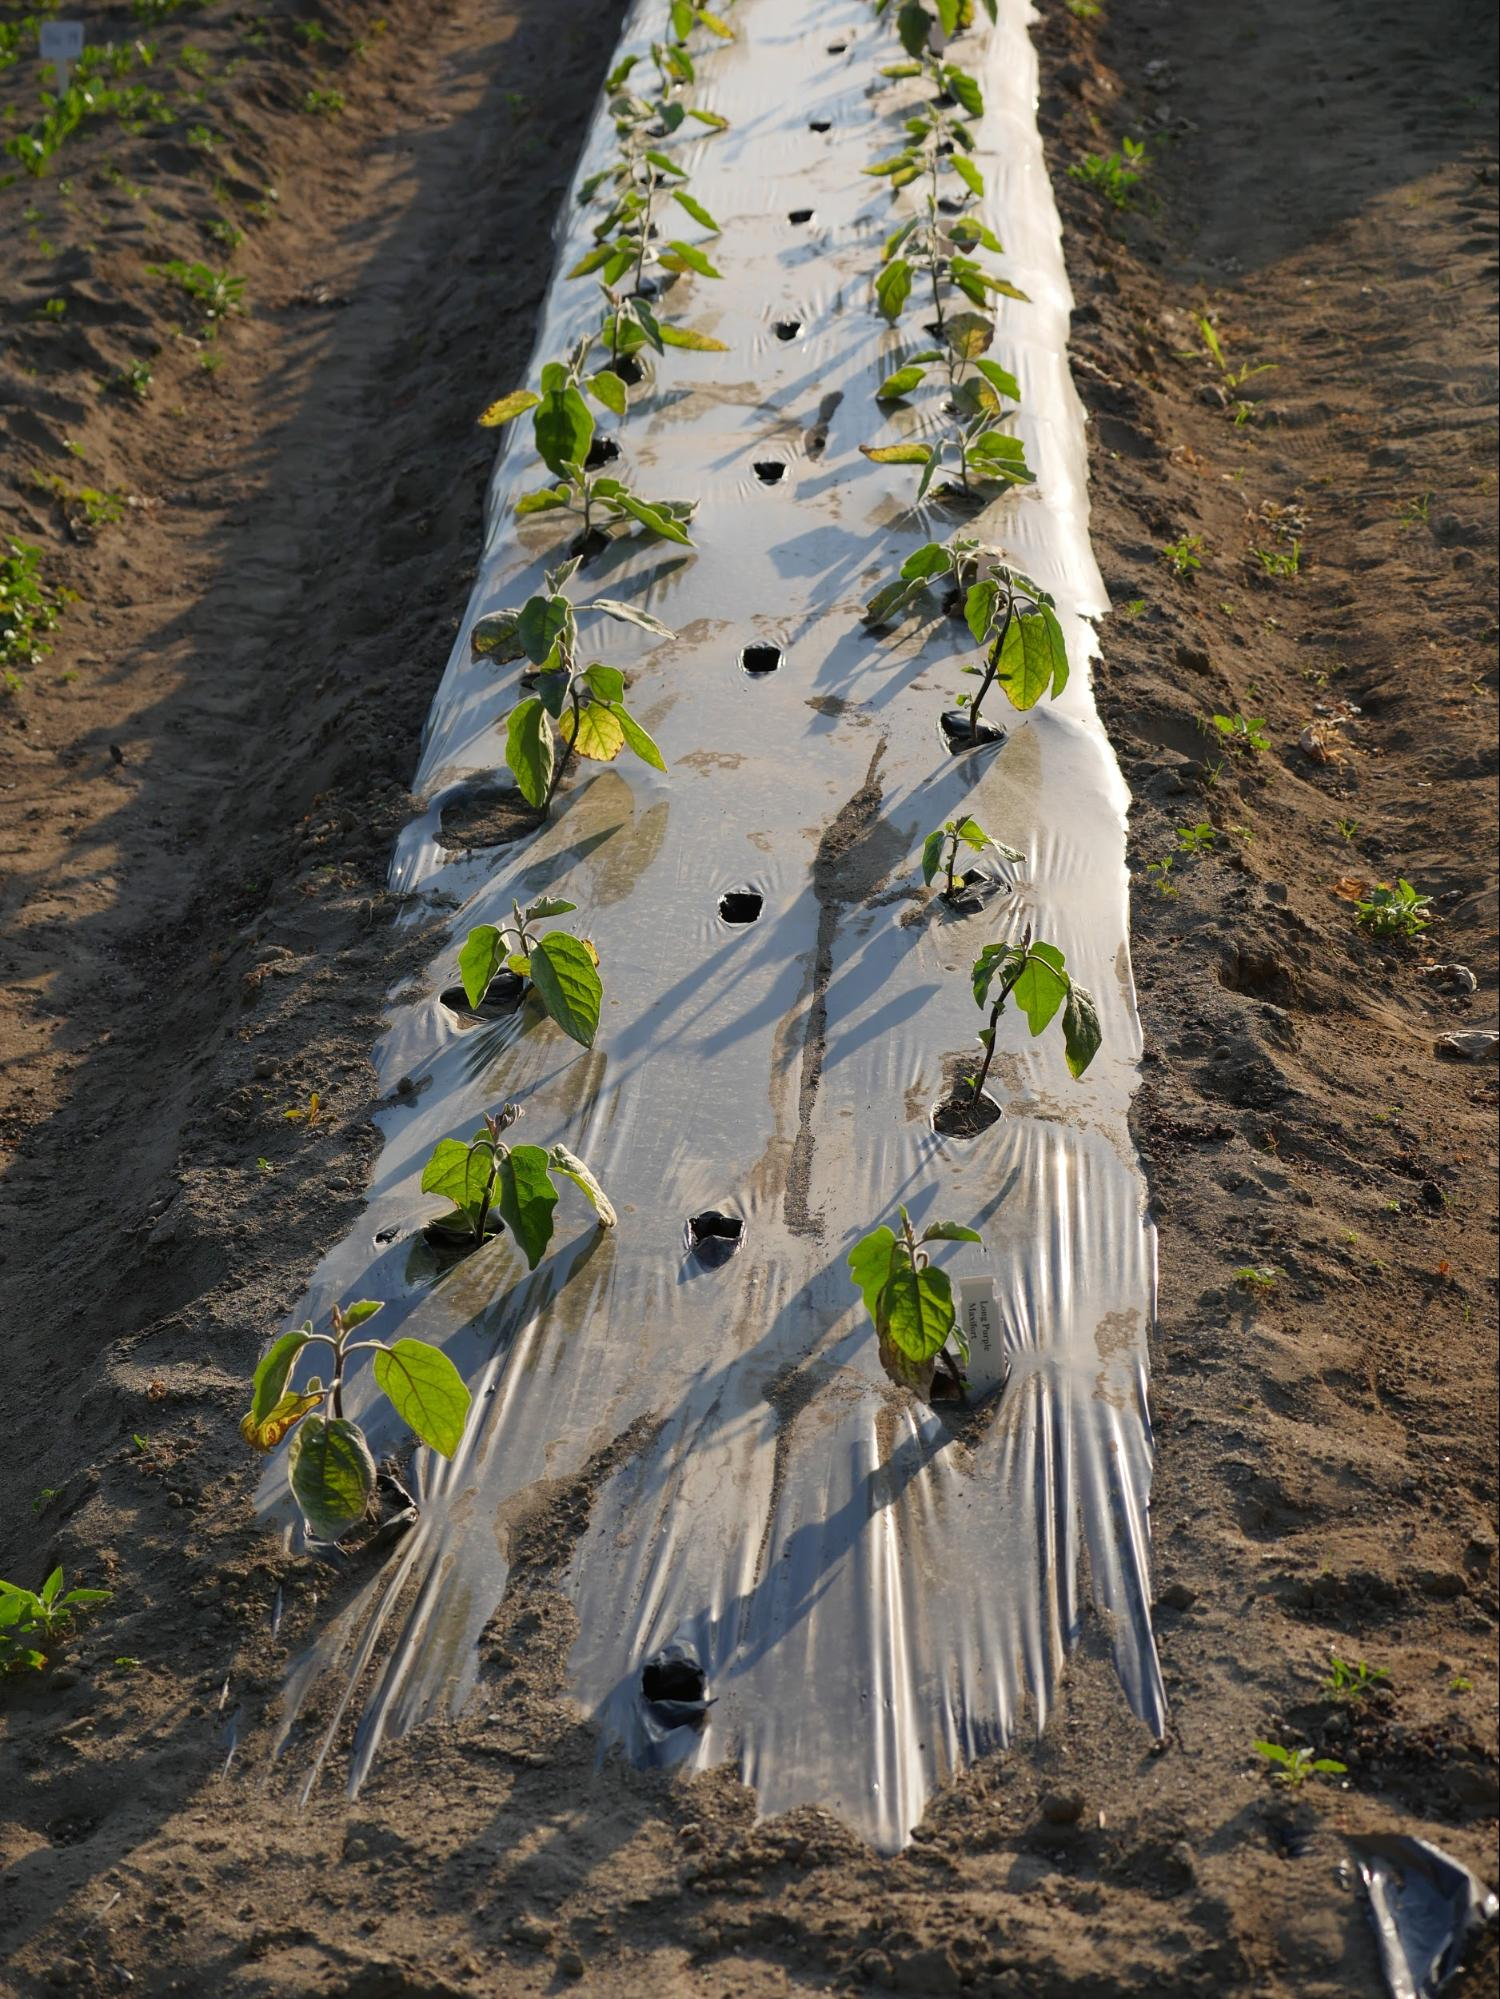 Figure 1. Black plastic covered raised beds for Abbotsford Eggplant Trial.